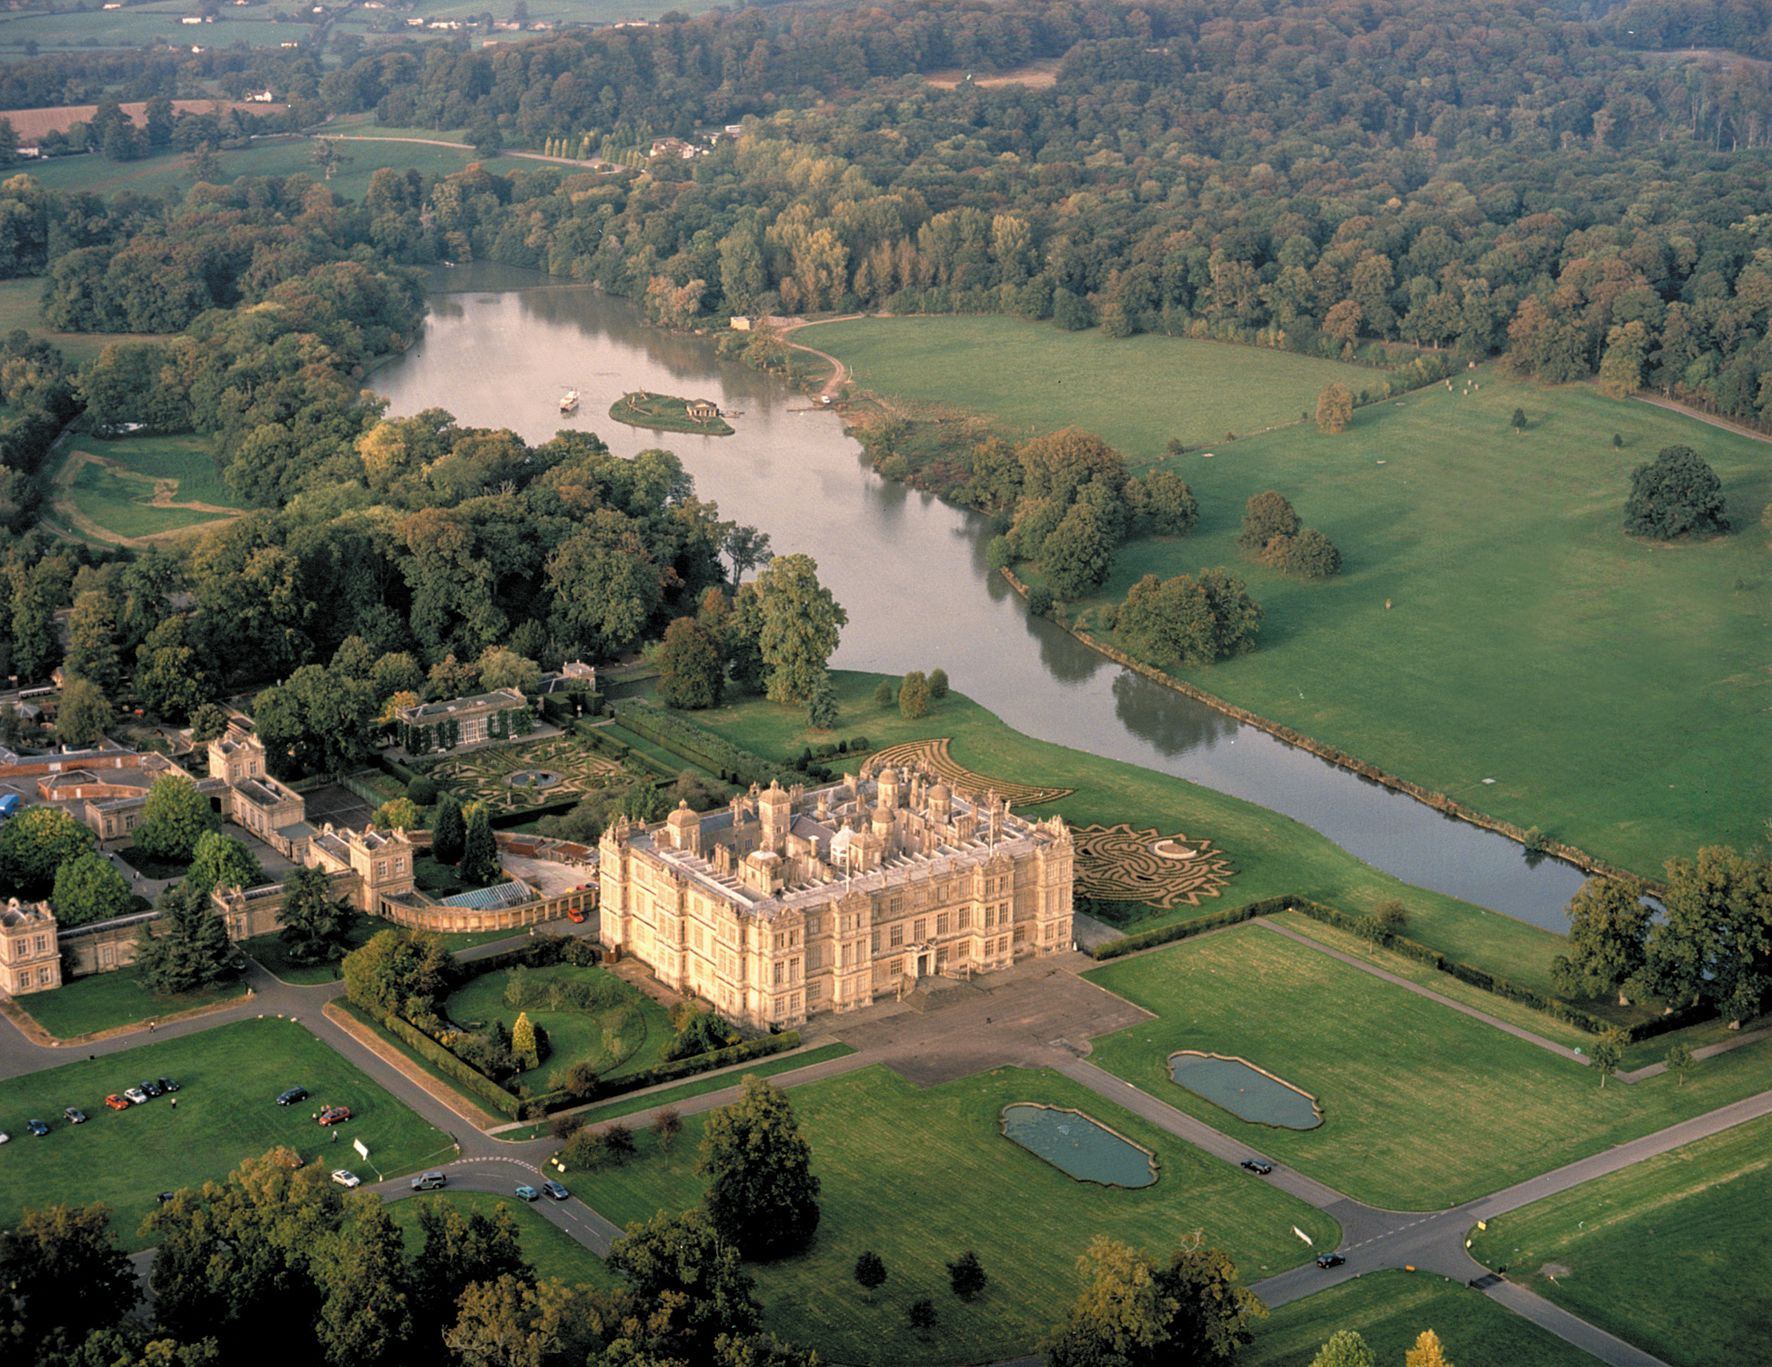 Longleat House Wiltshire, England English stately home